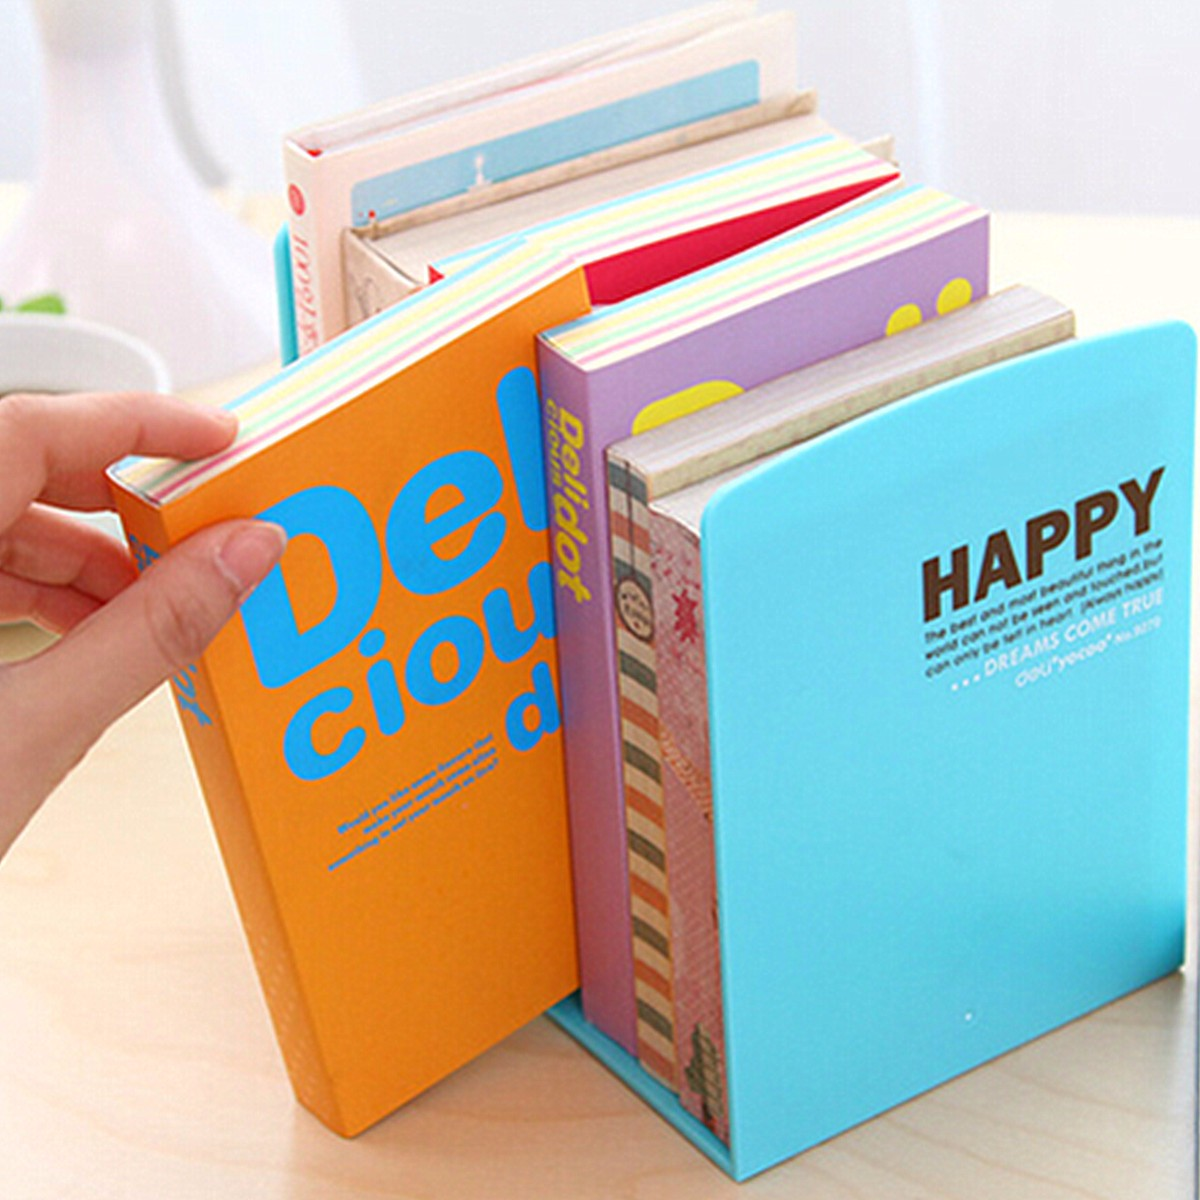 2 Pcs Durable Plastic Book End Shelf Bookend Holder Office